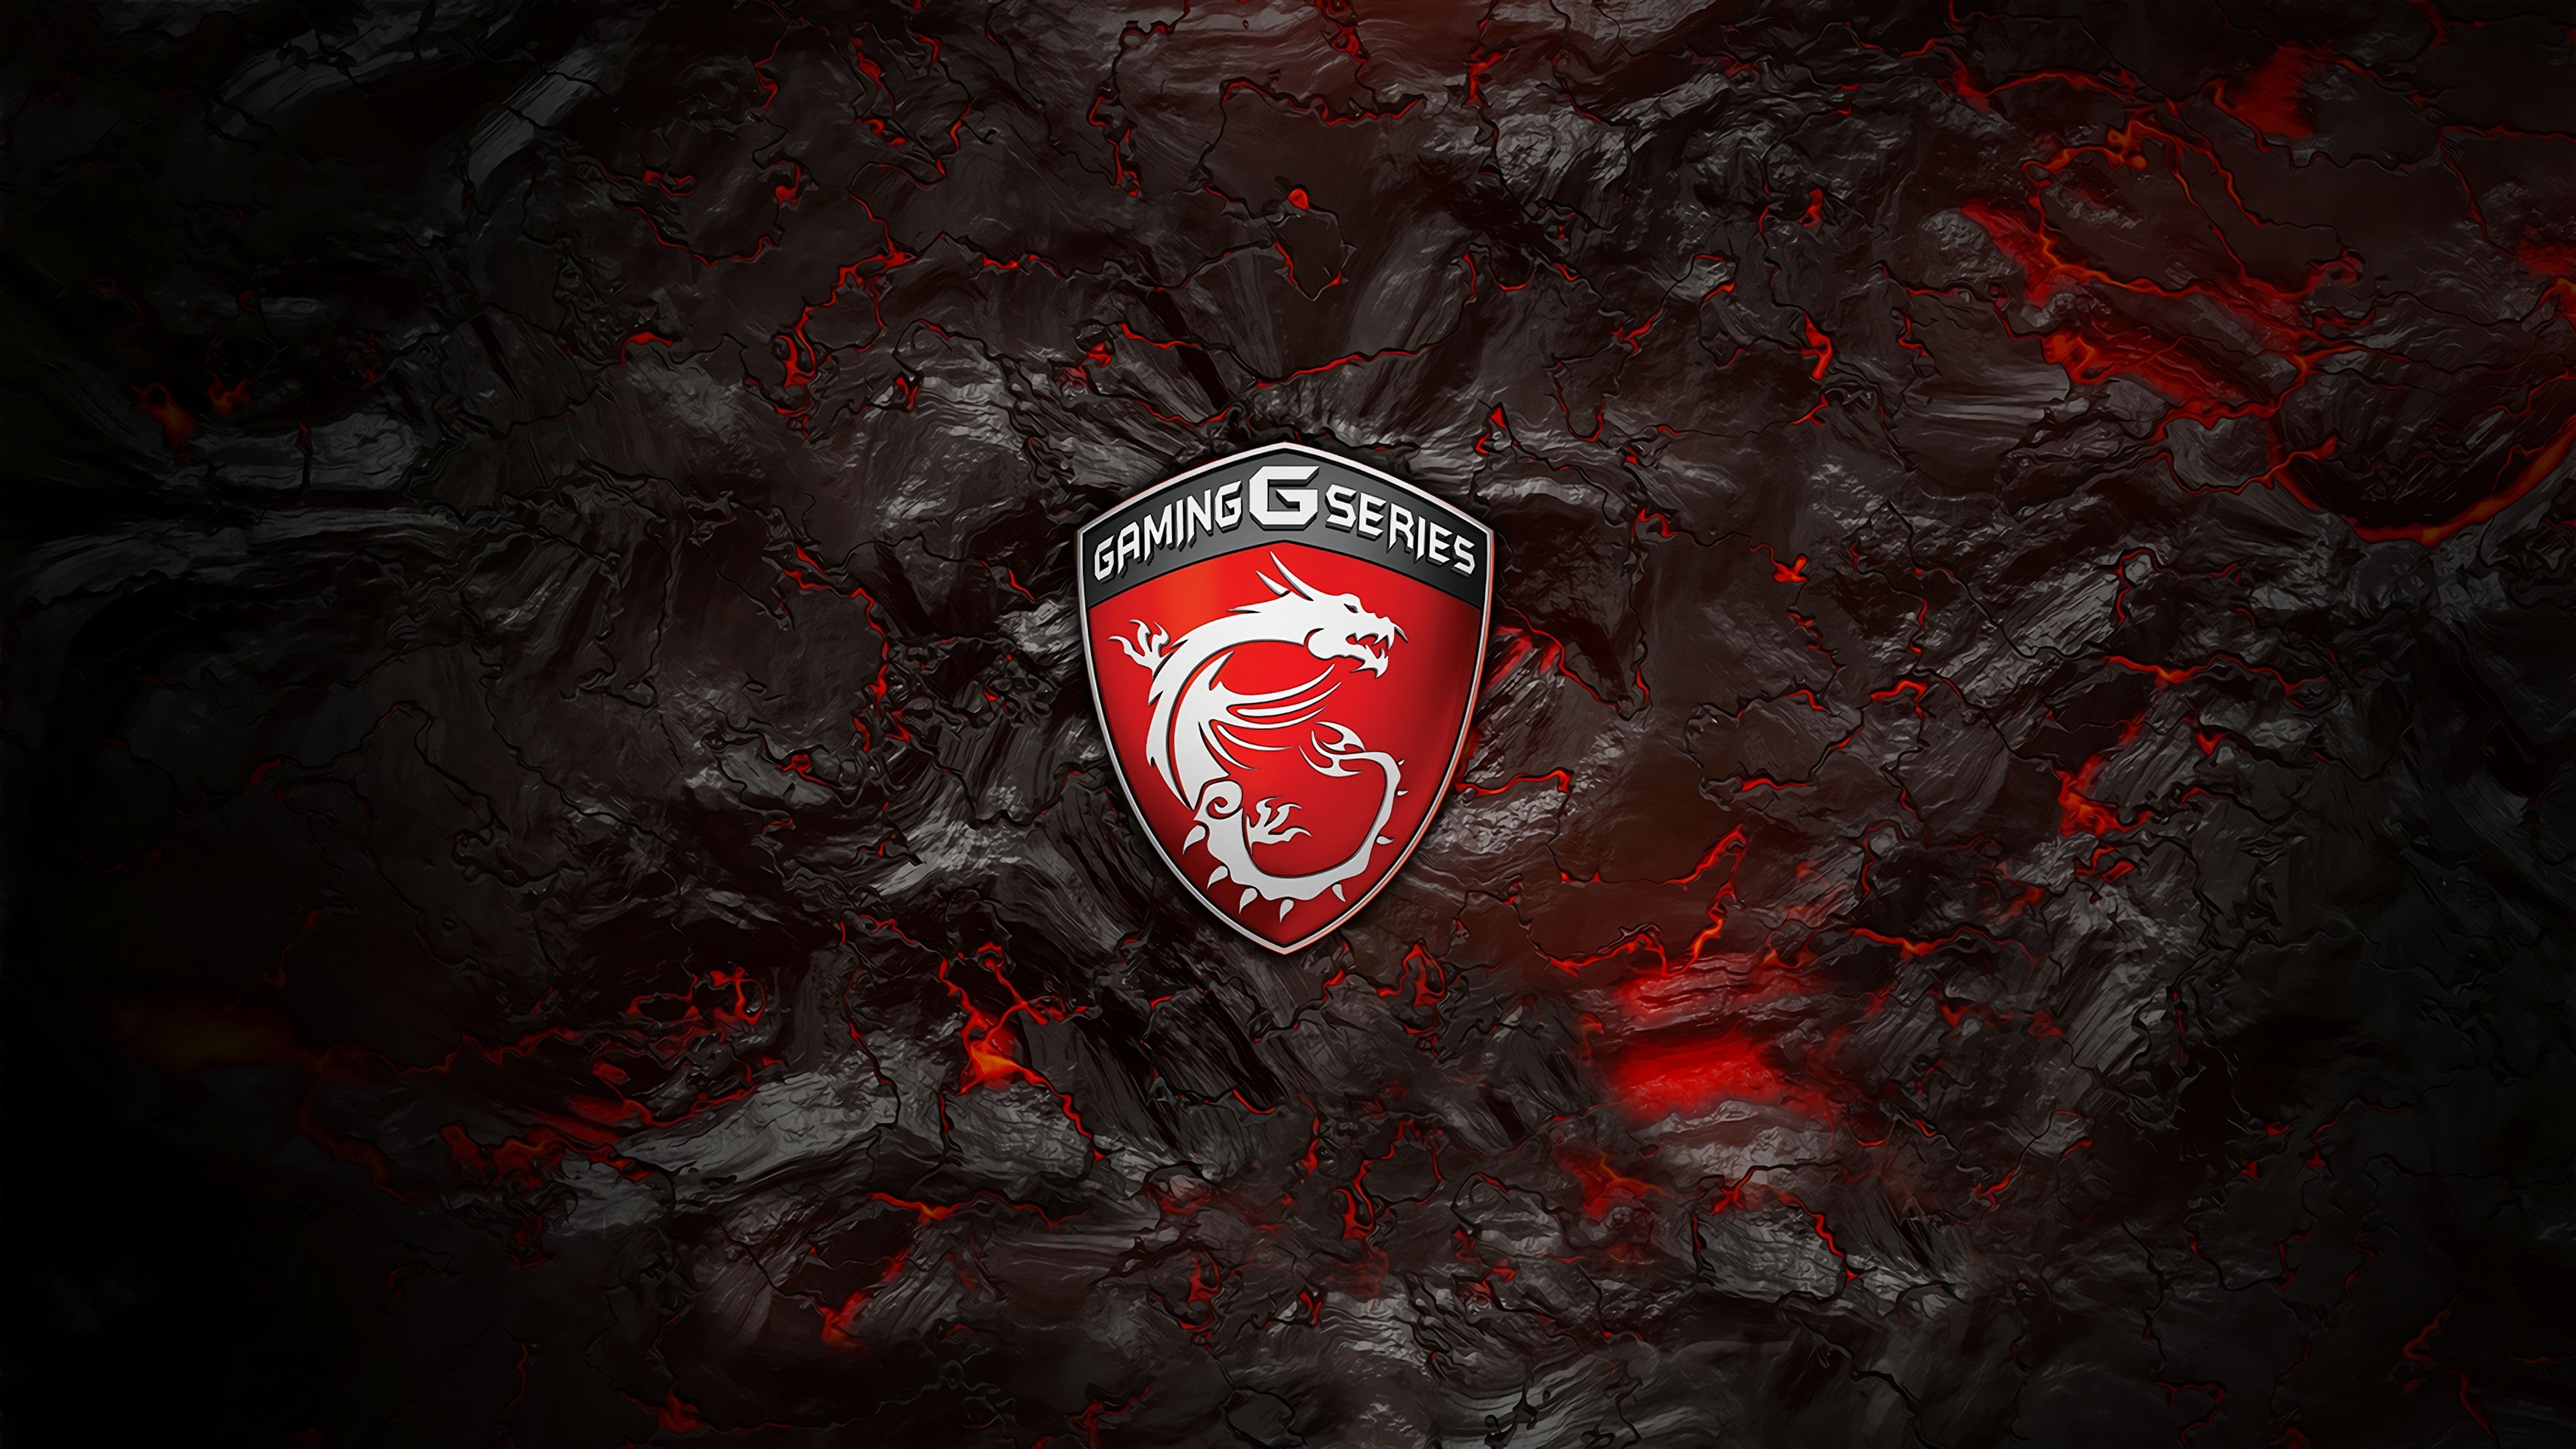 MSI Gaming G Series Logo Lava Background 4k wallpaper